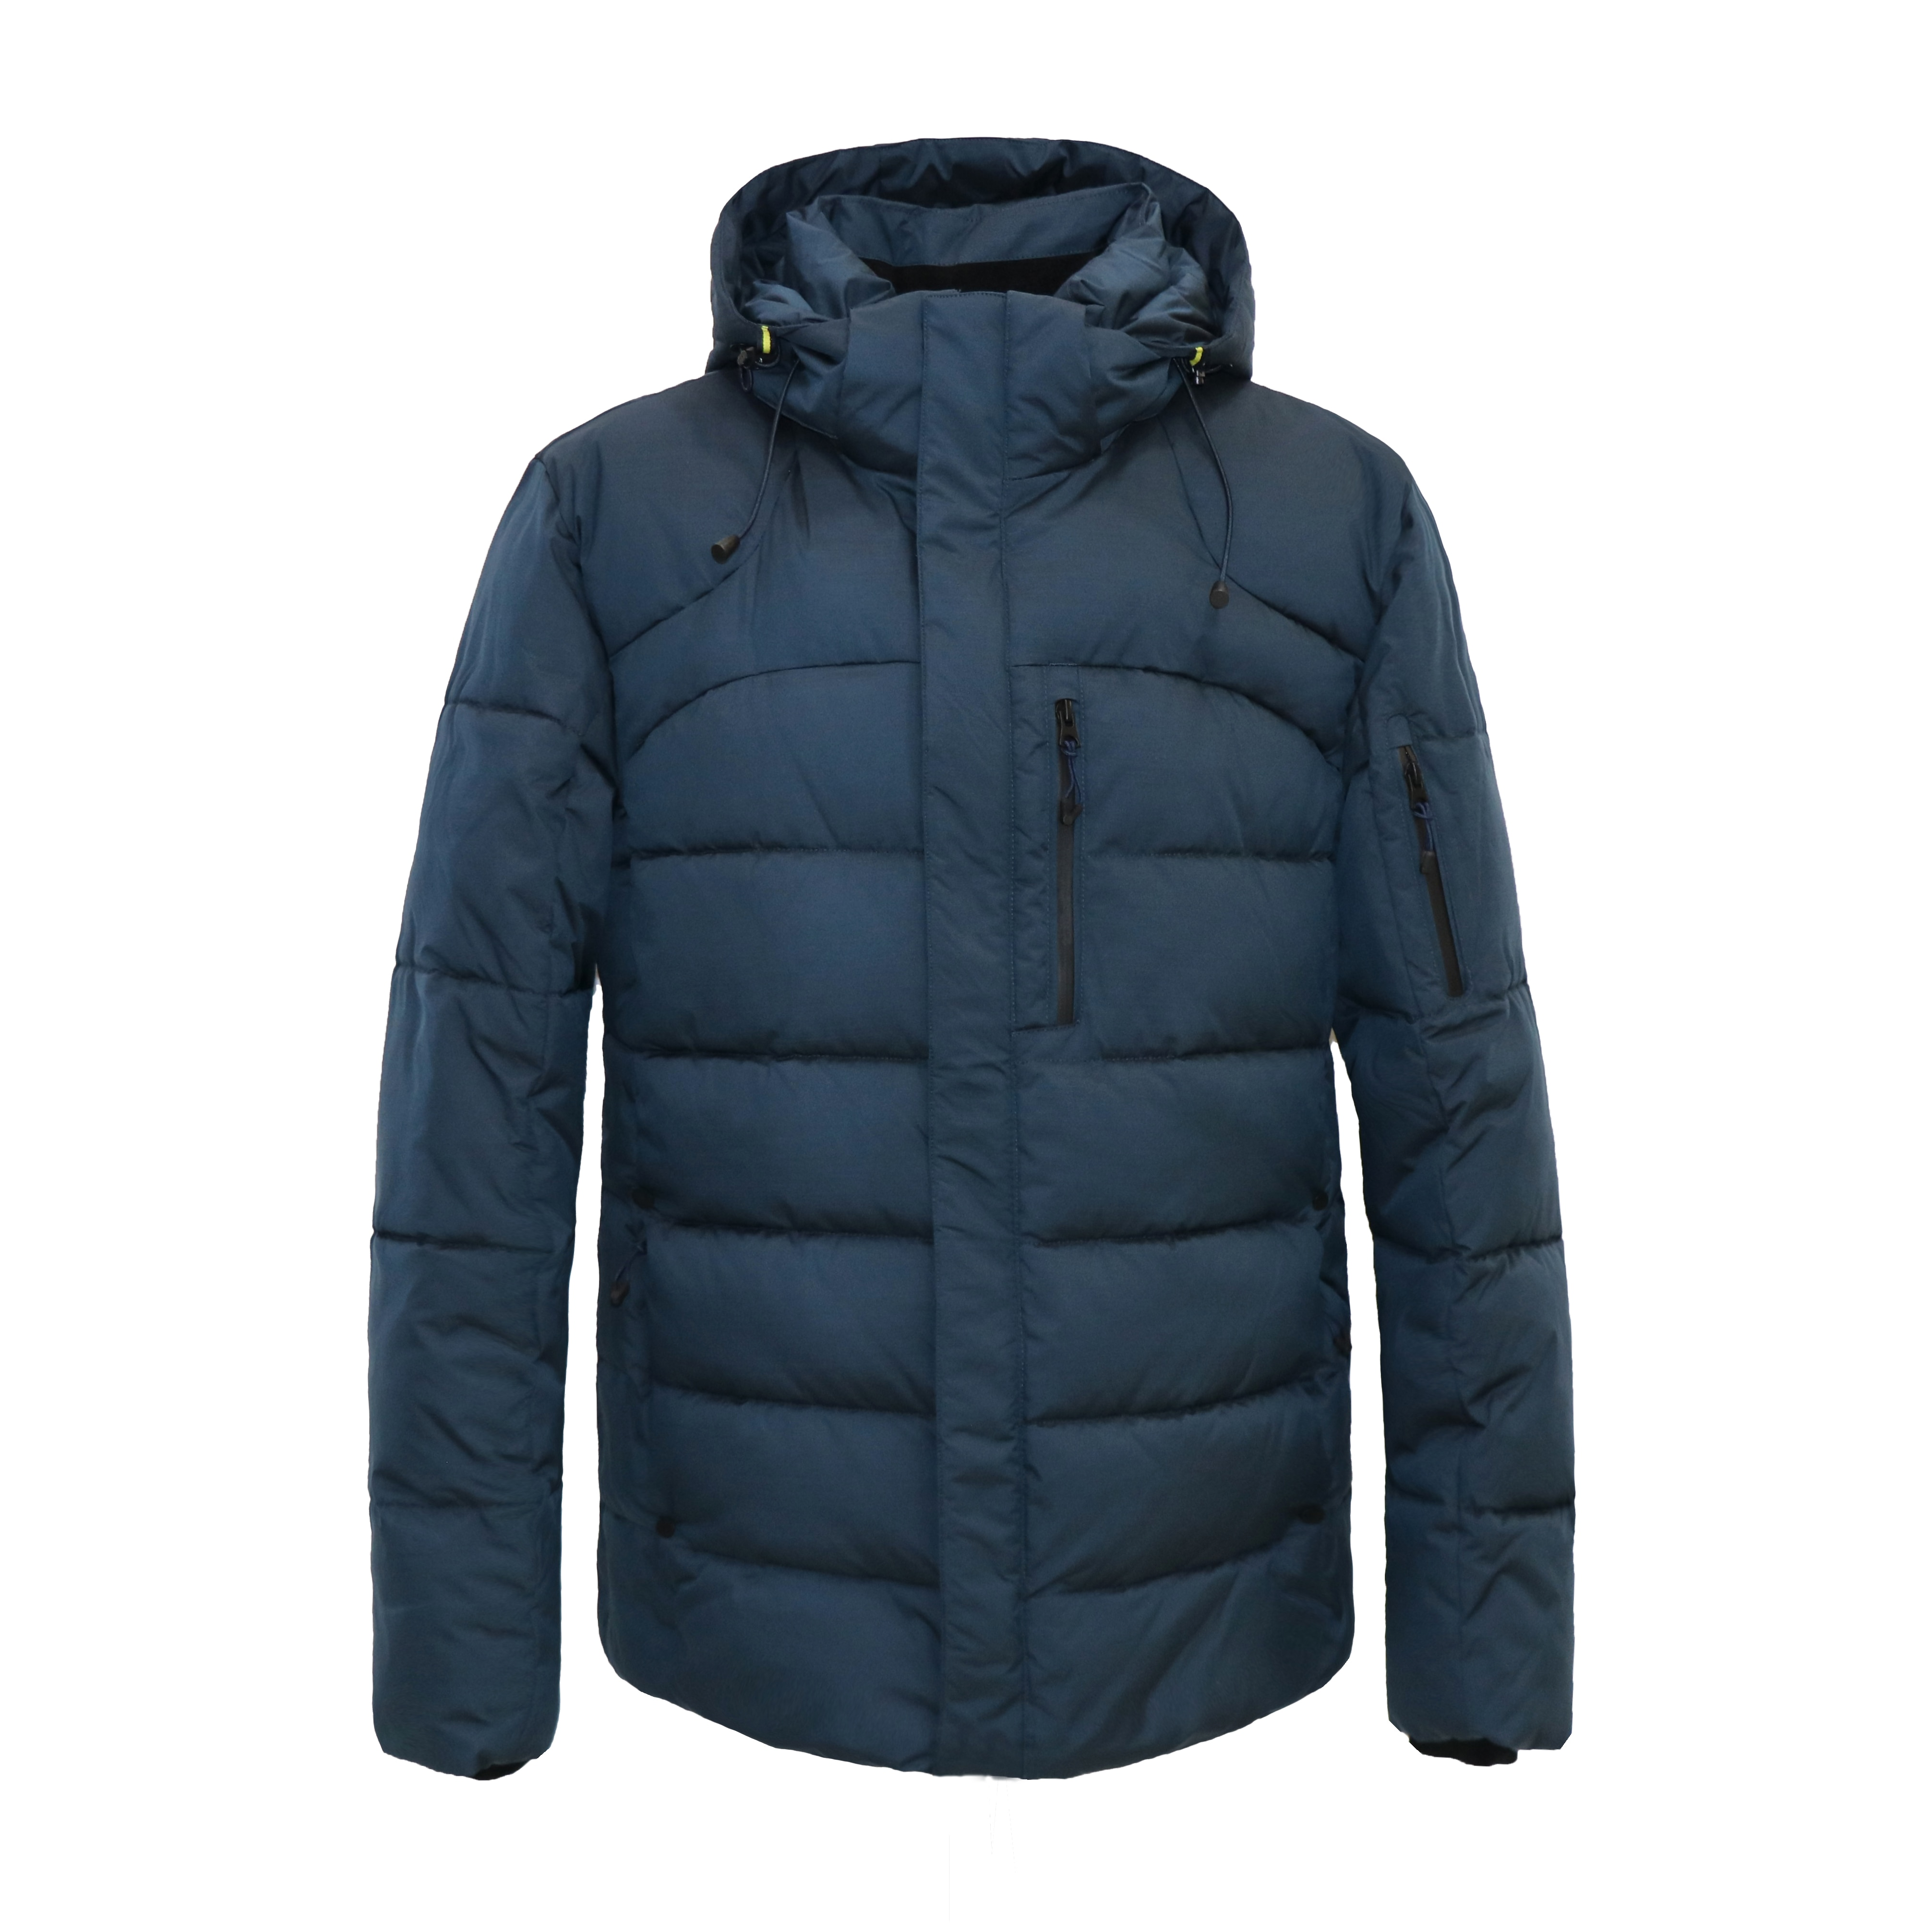 2021 men winter jacket coat warm cotton Brand New casual Waterproof Parka Thick hat detachable men clothes Padded Jacket male